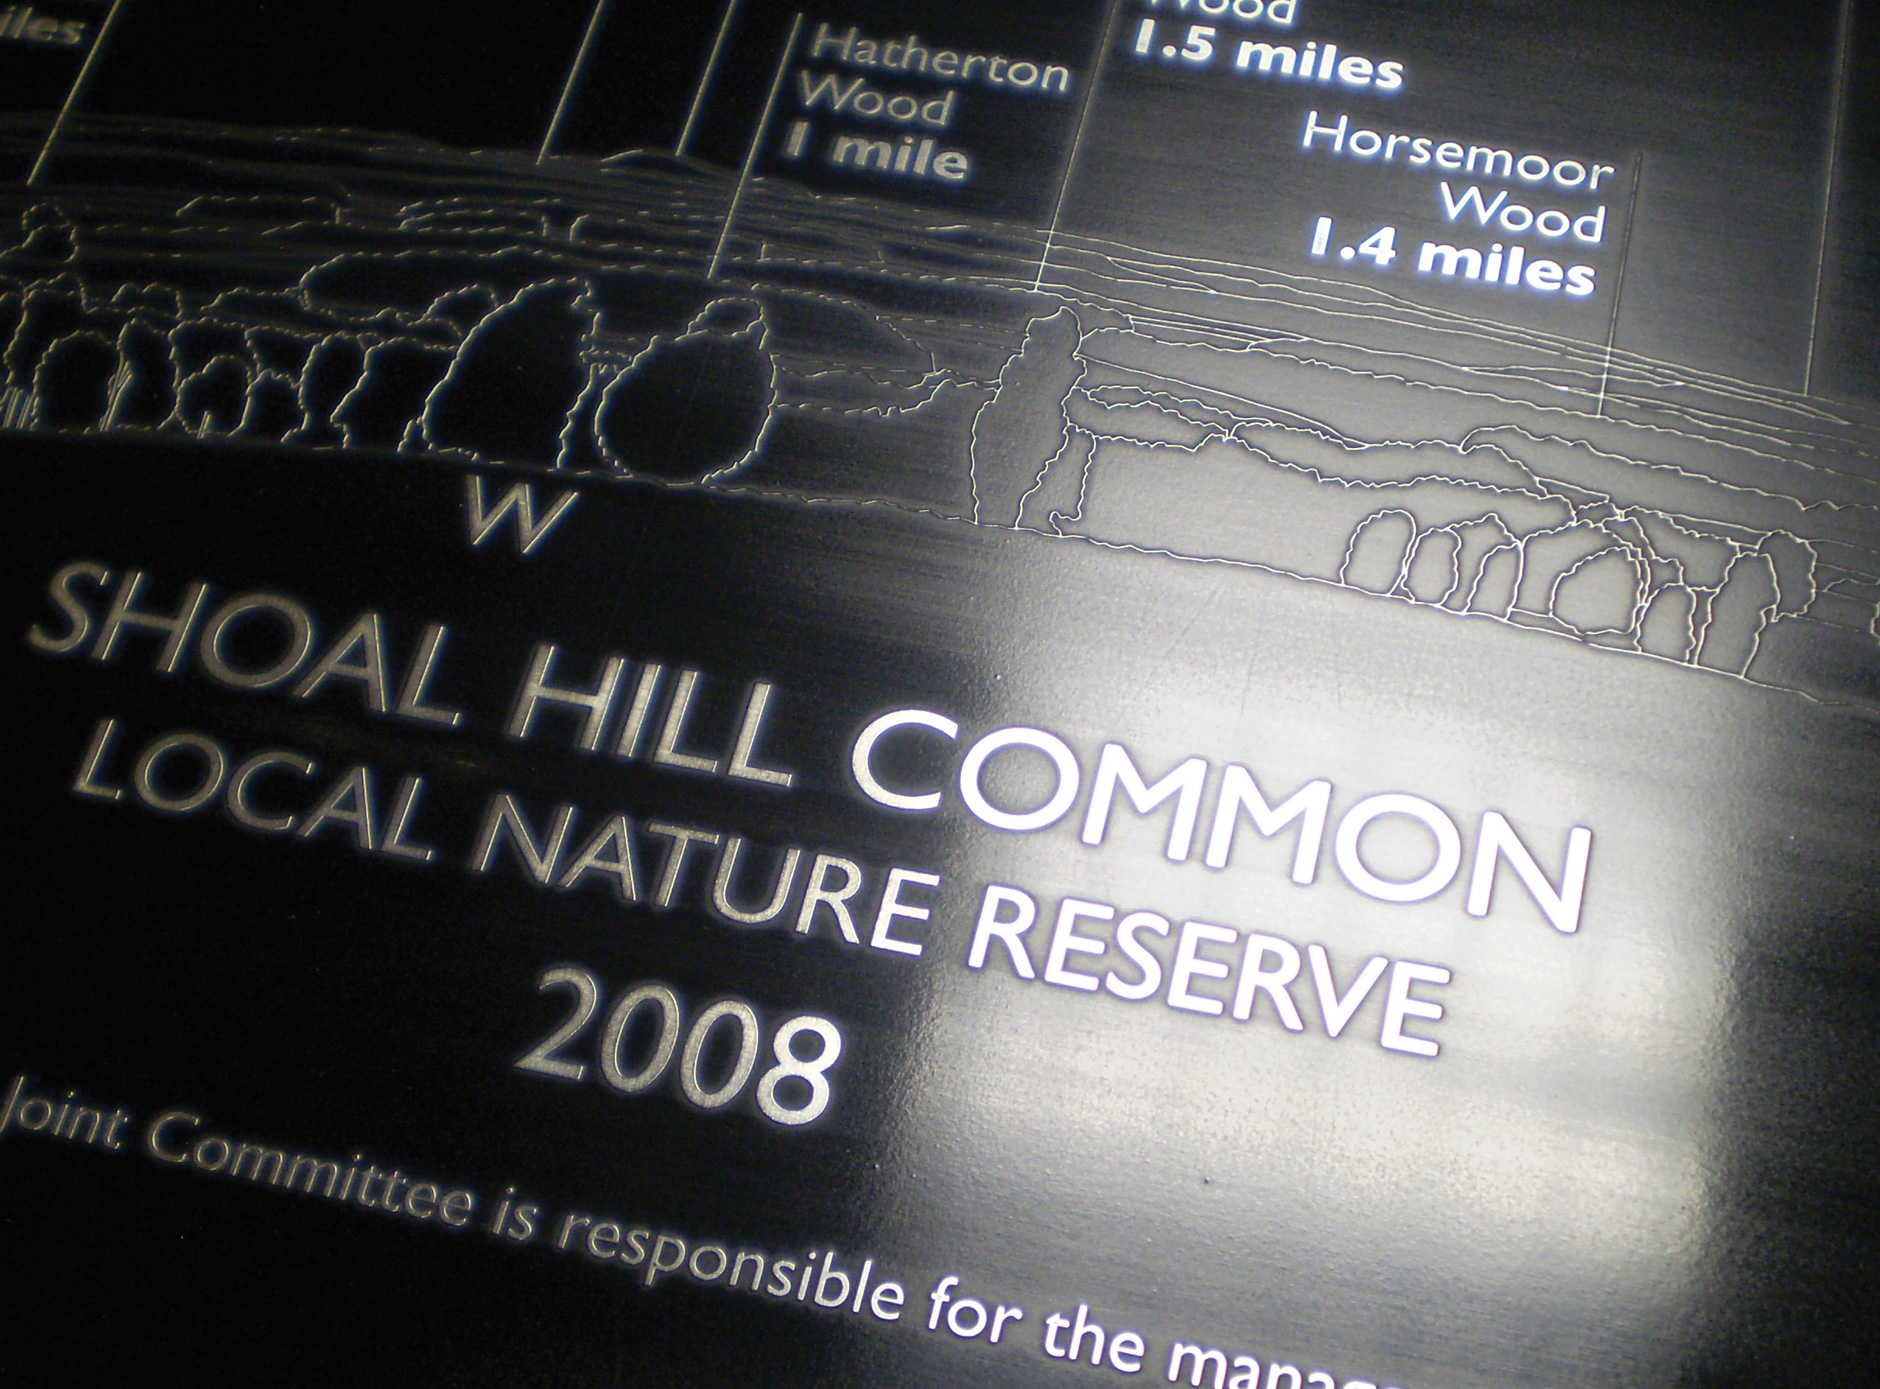 Shoal Hill Common toposcope